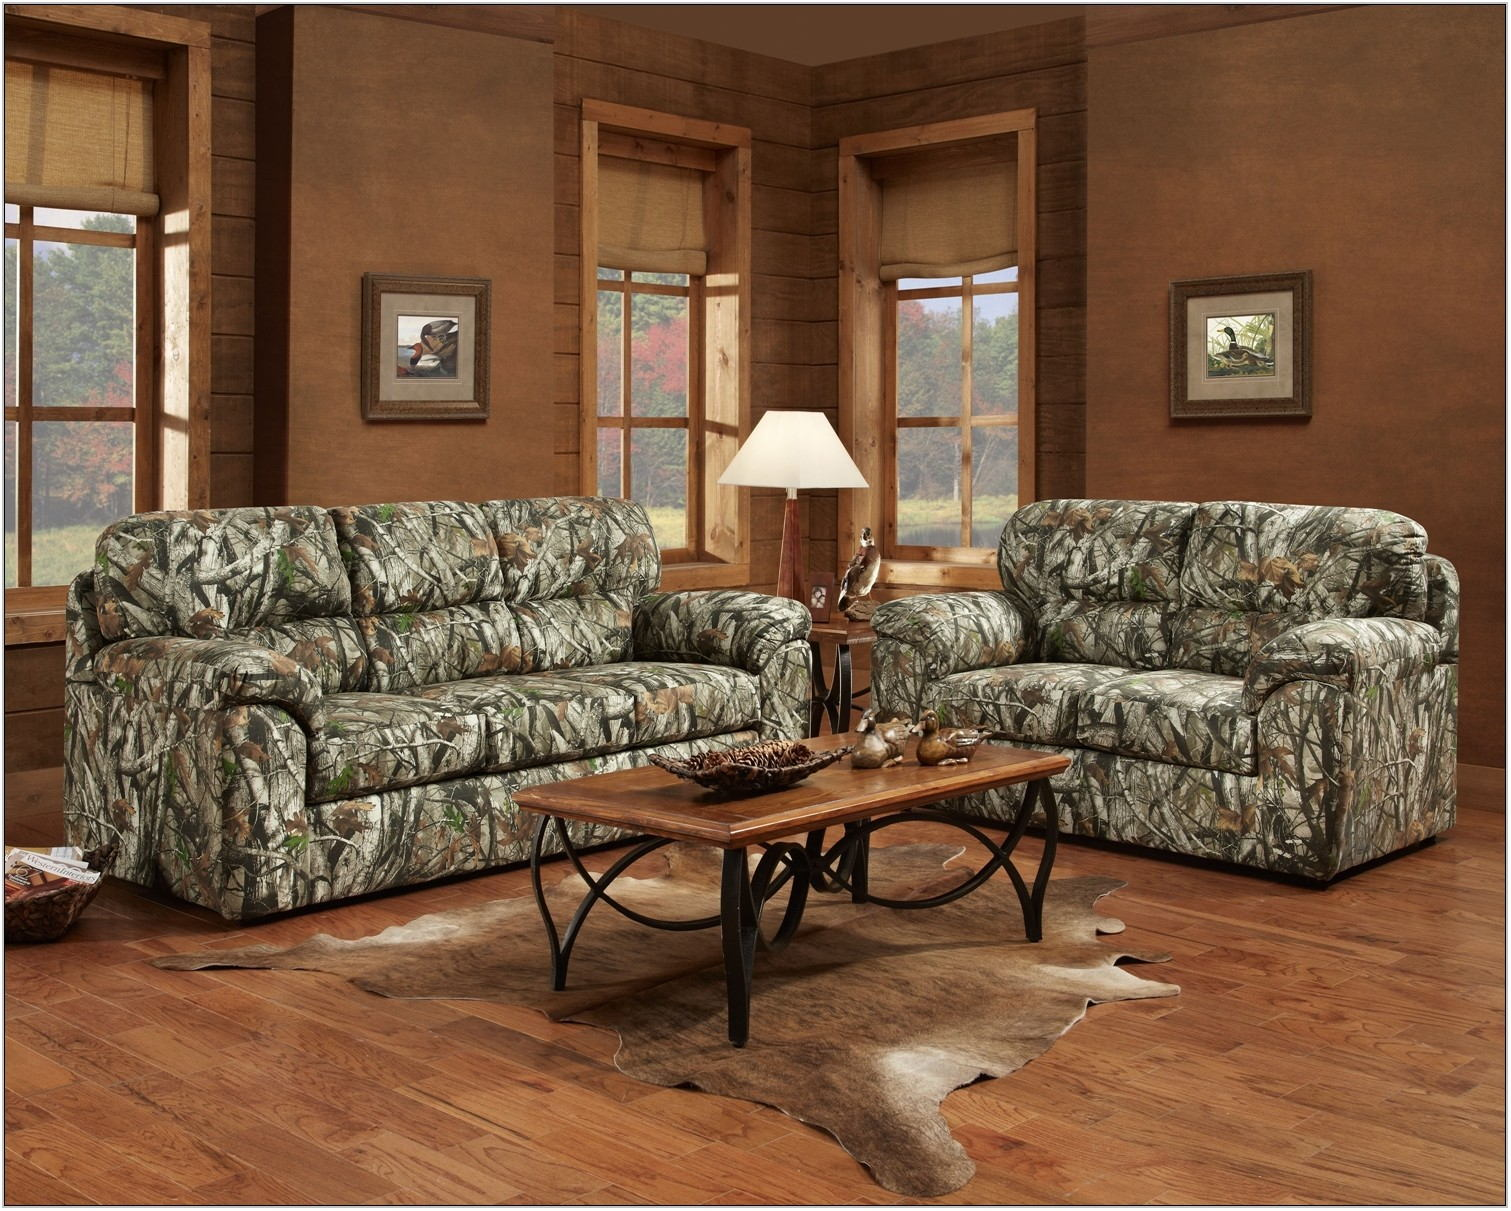 Mossy Oak Living Room Set